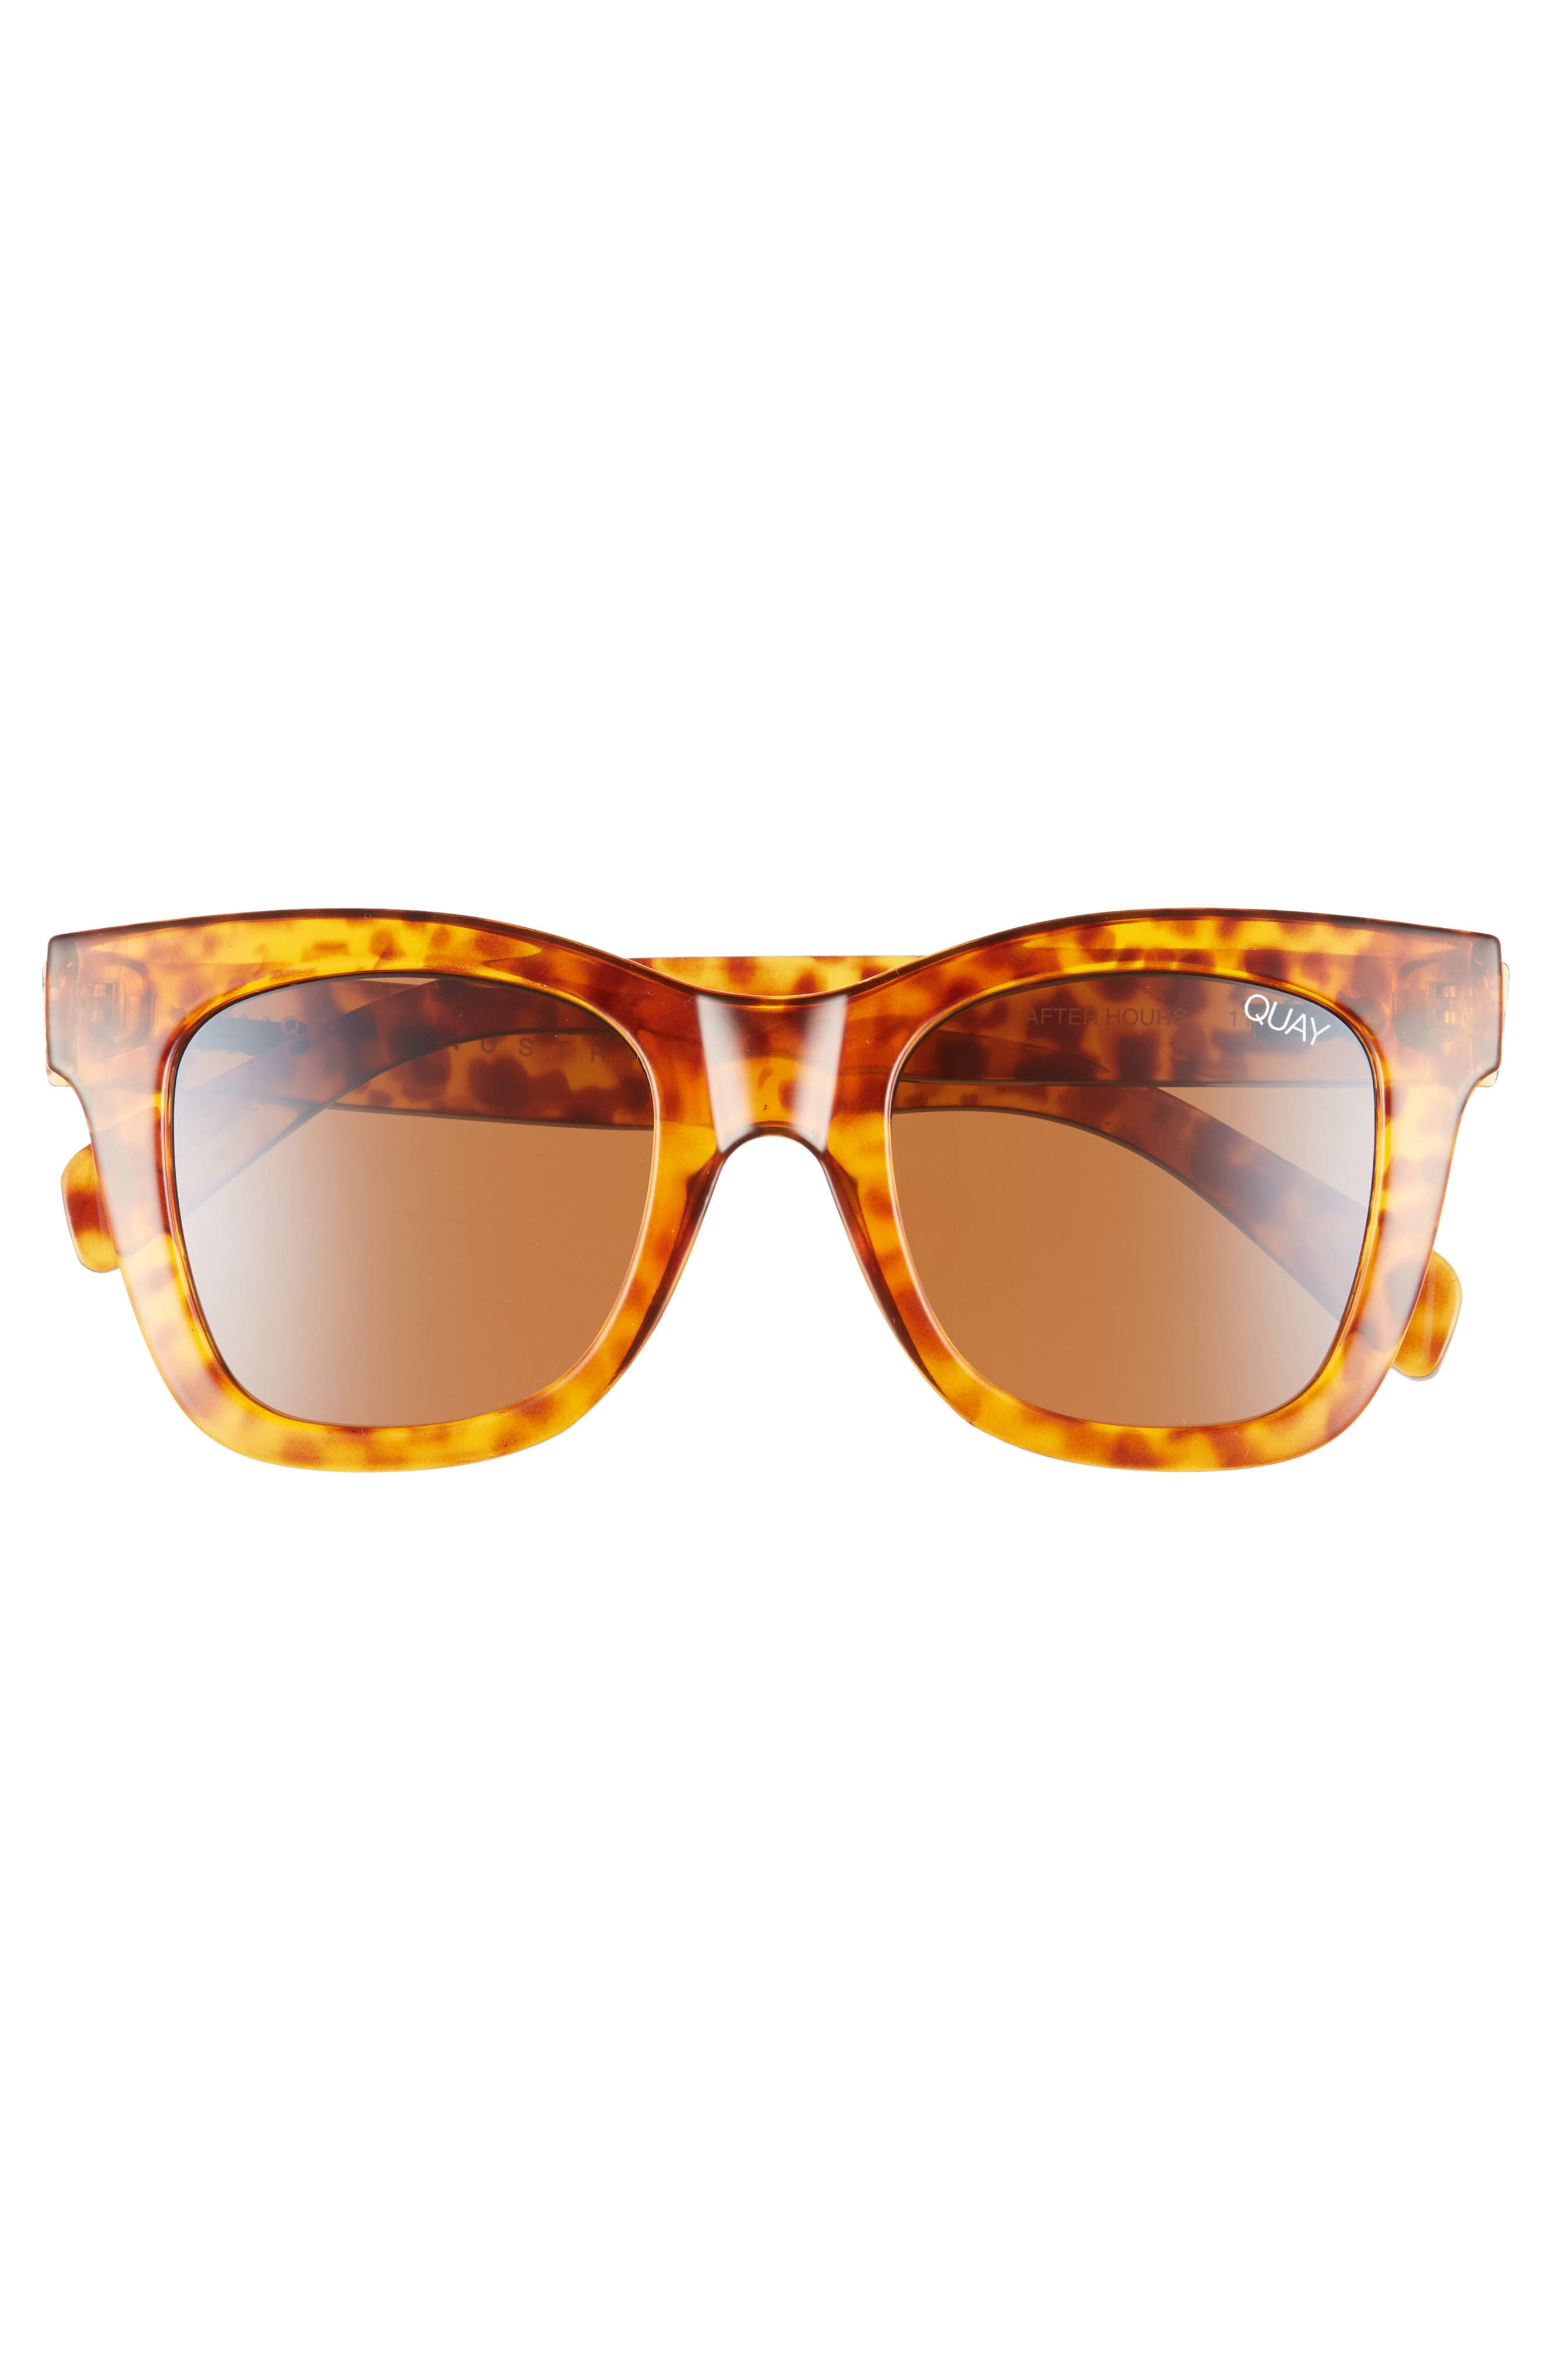 QUAY AUSTRALIA, After Hours 50mm Square Sunglasses, Alternate thumbnail 3, color, ORANGE TORT / BROWN